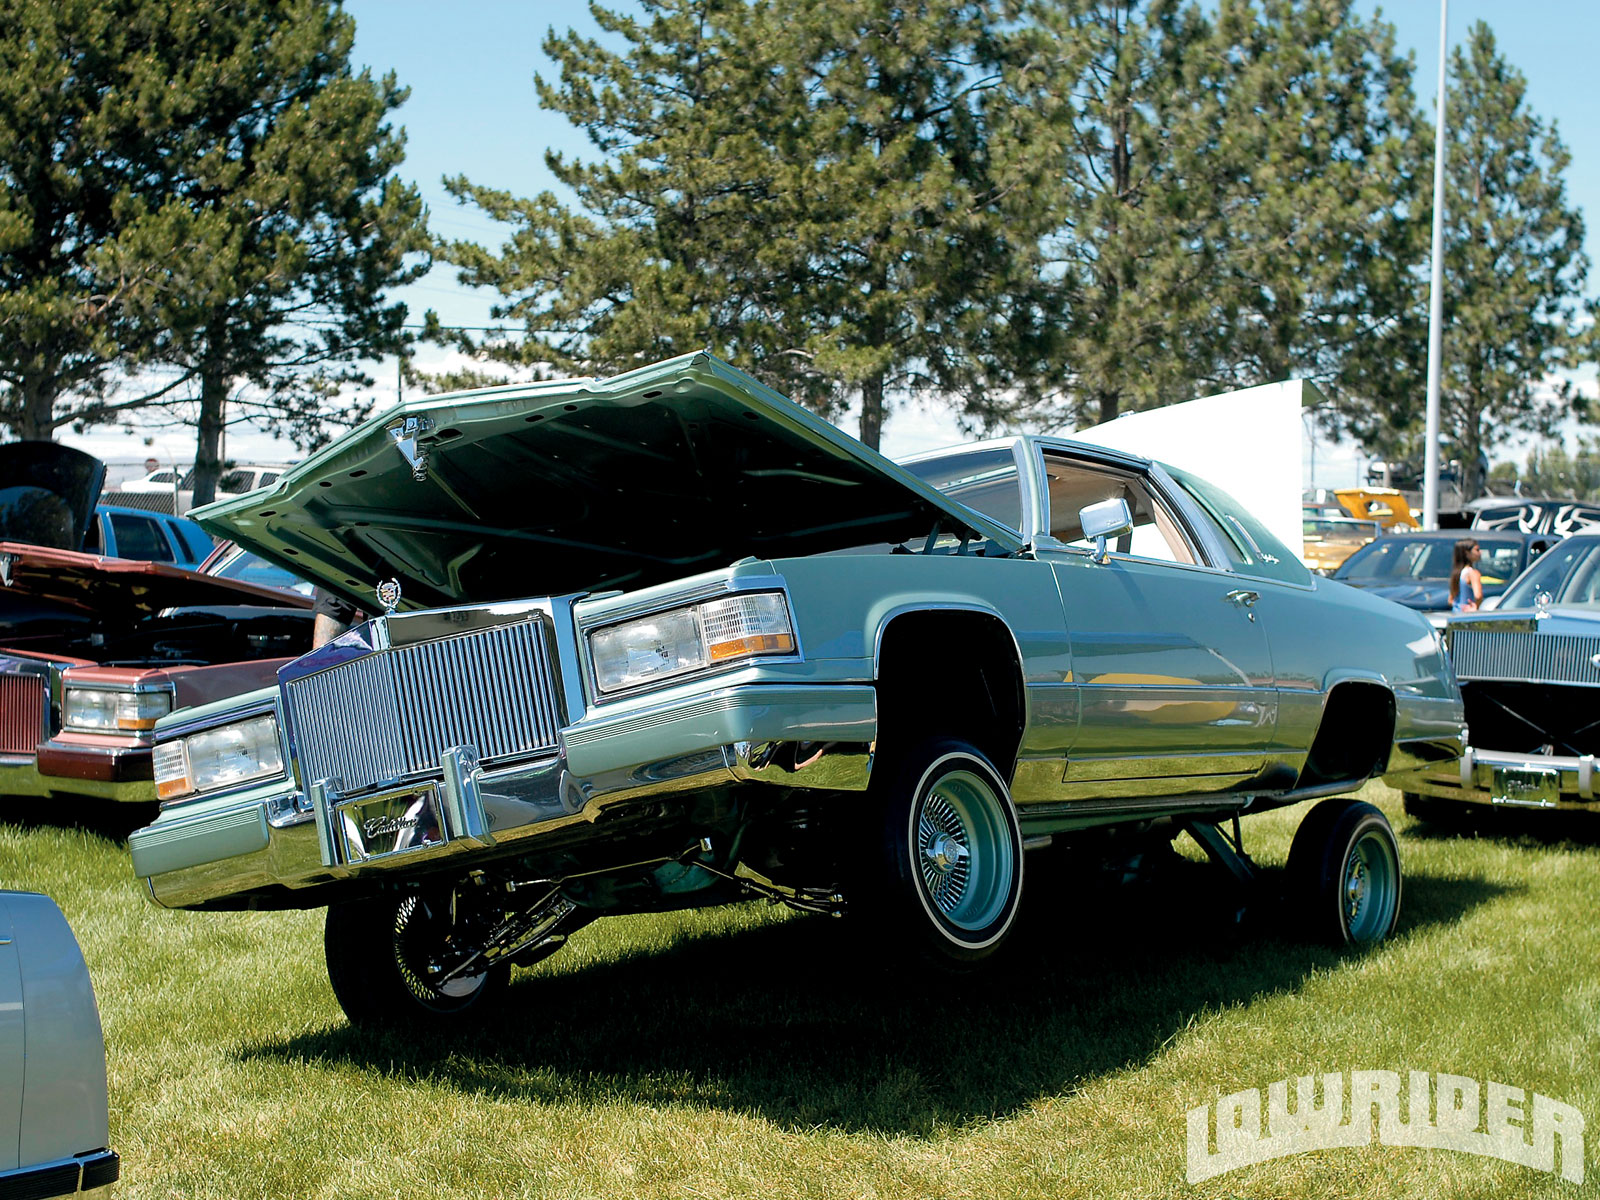 Cars With Hydraulics: Lowcos' 4th Annual Car Show